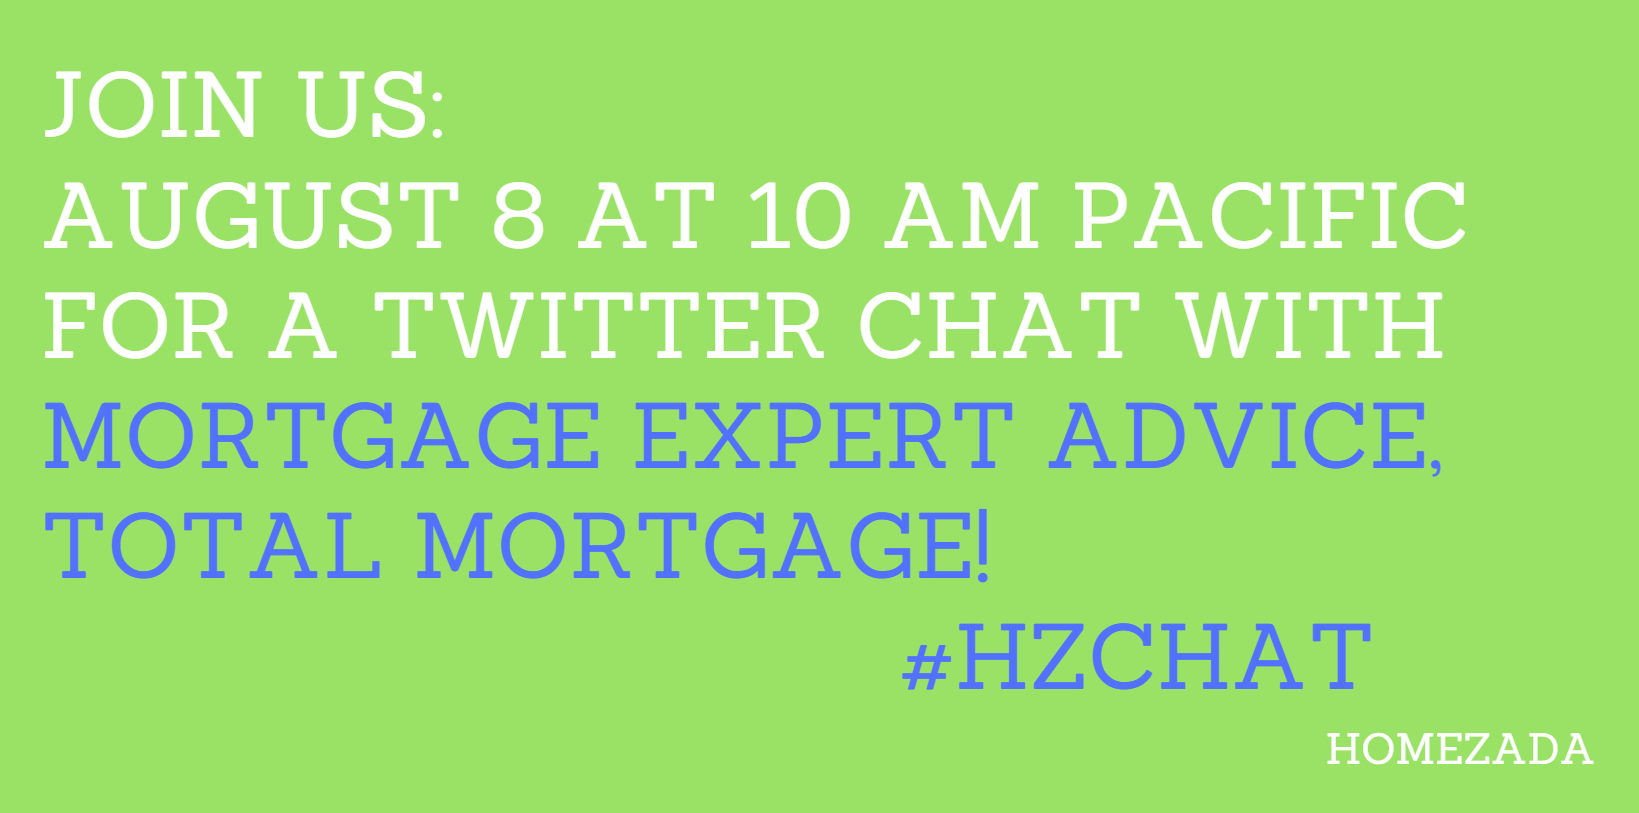 HomeZada Twitter Chat